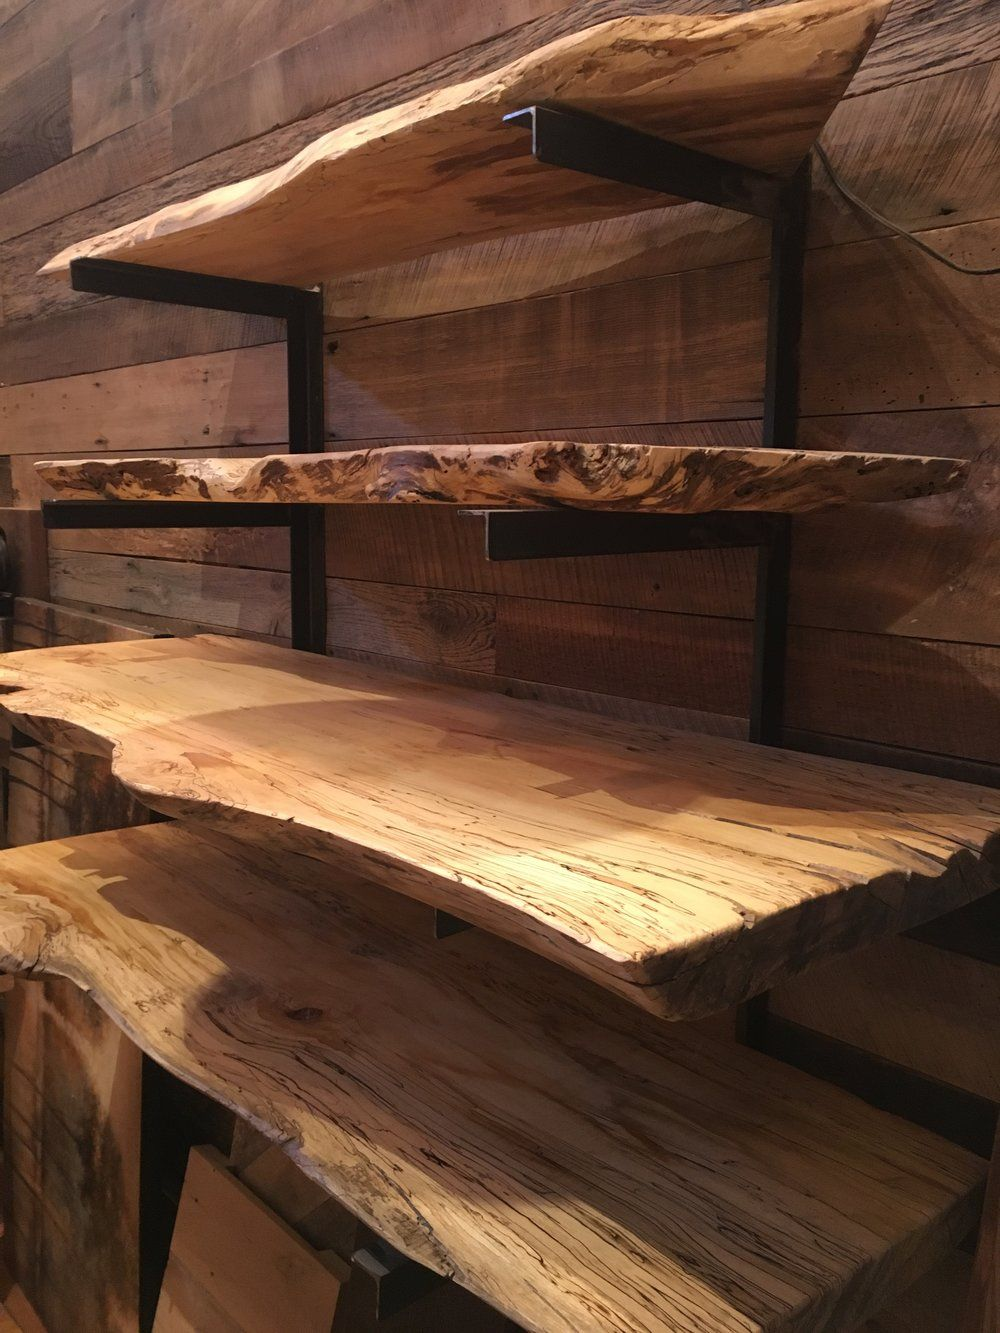 Woodstock Vintage Lumber Nashville S Original Reclaimed Lumber Store Blog In 2020 Live Edge Shelves Live Edge Furniture Rustic Wood Floating Shelves